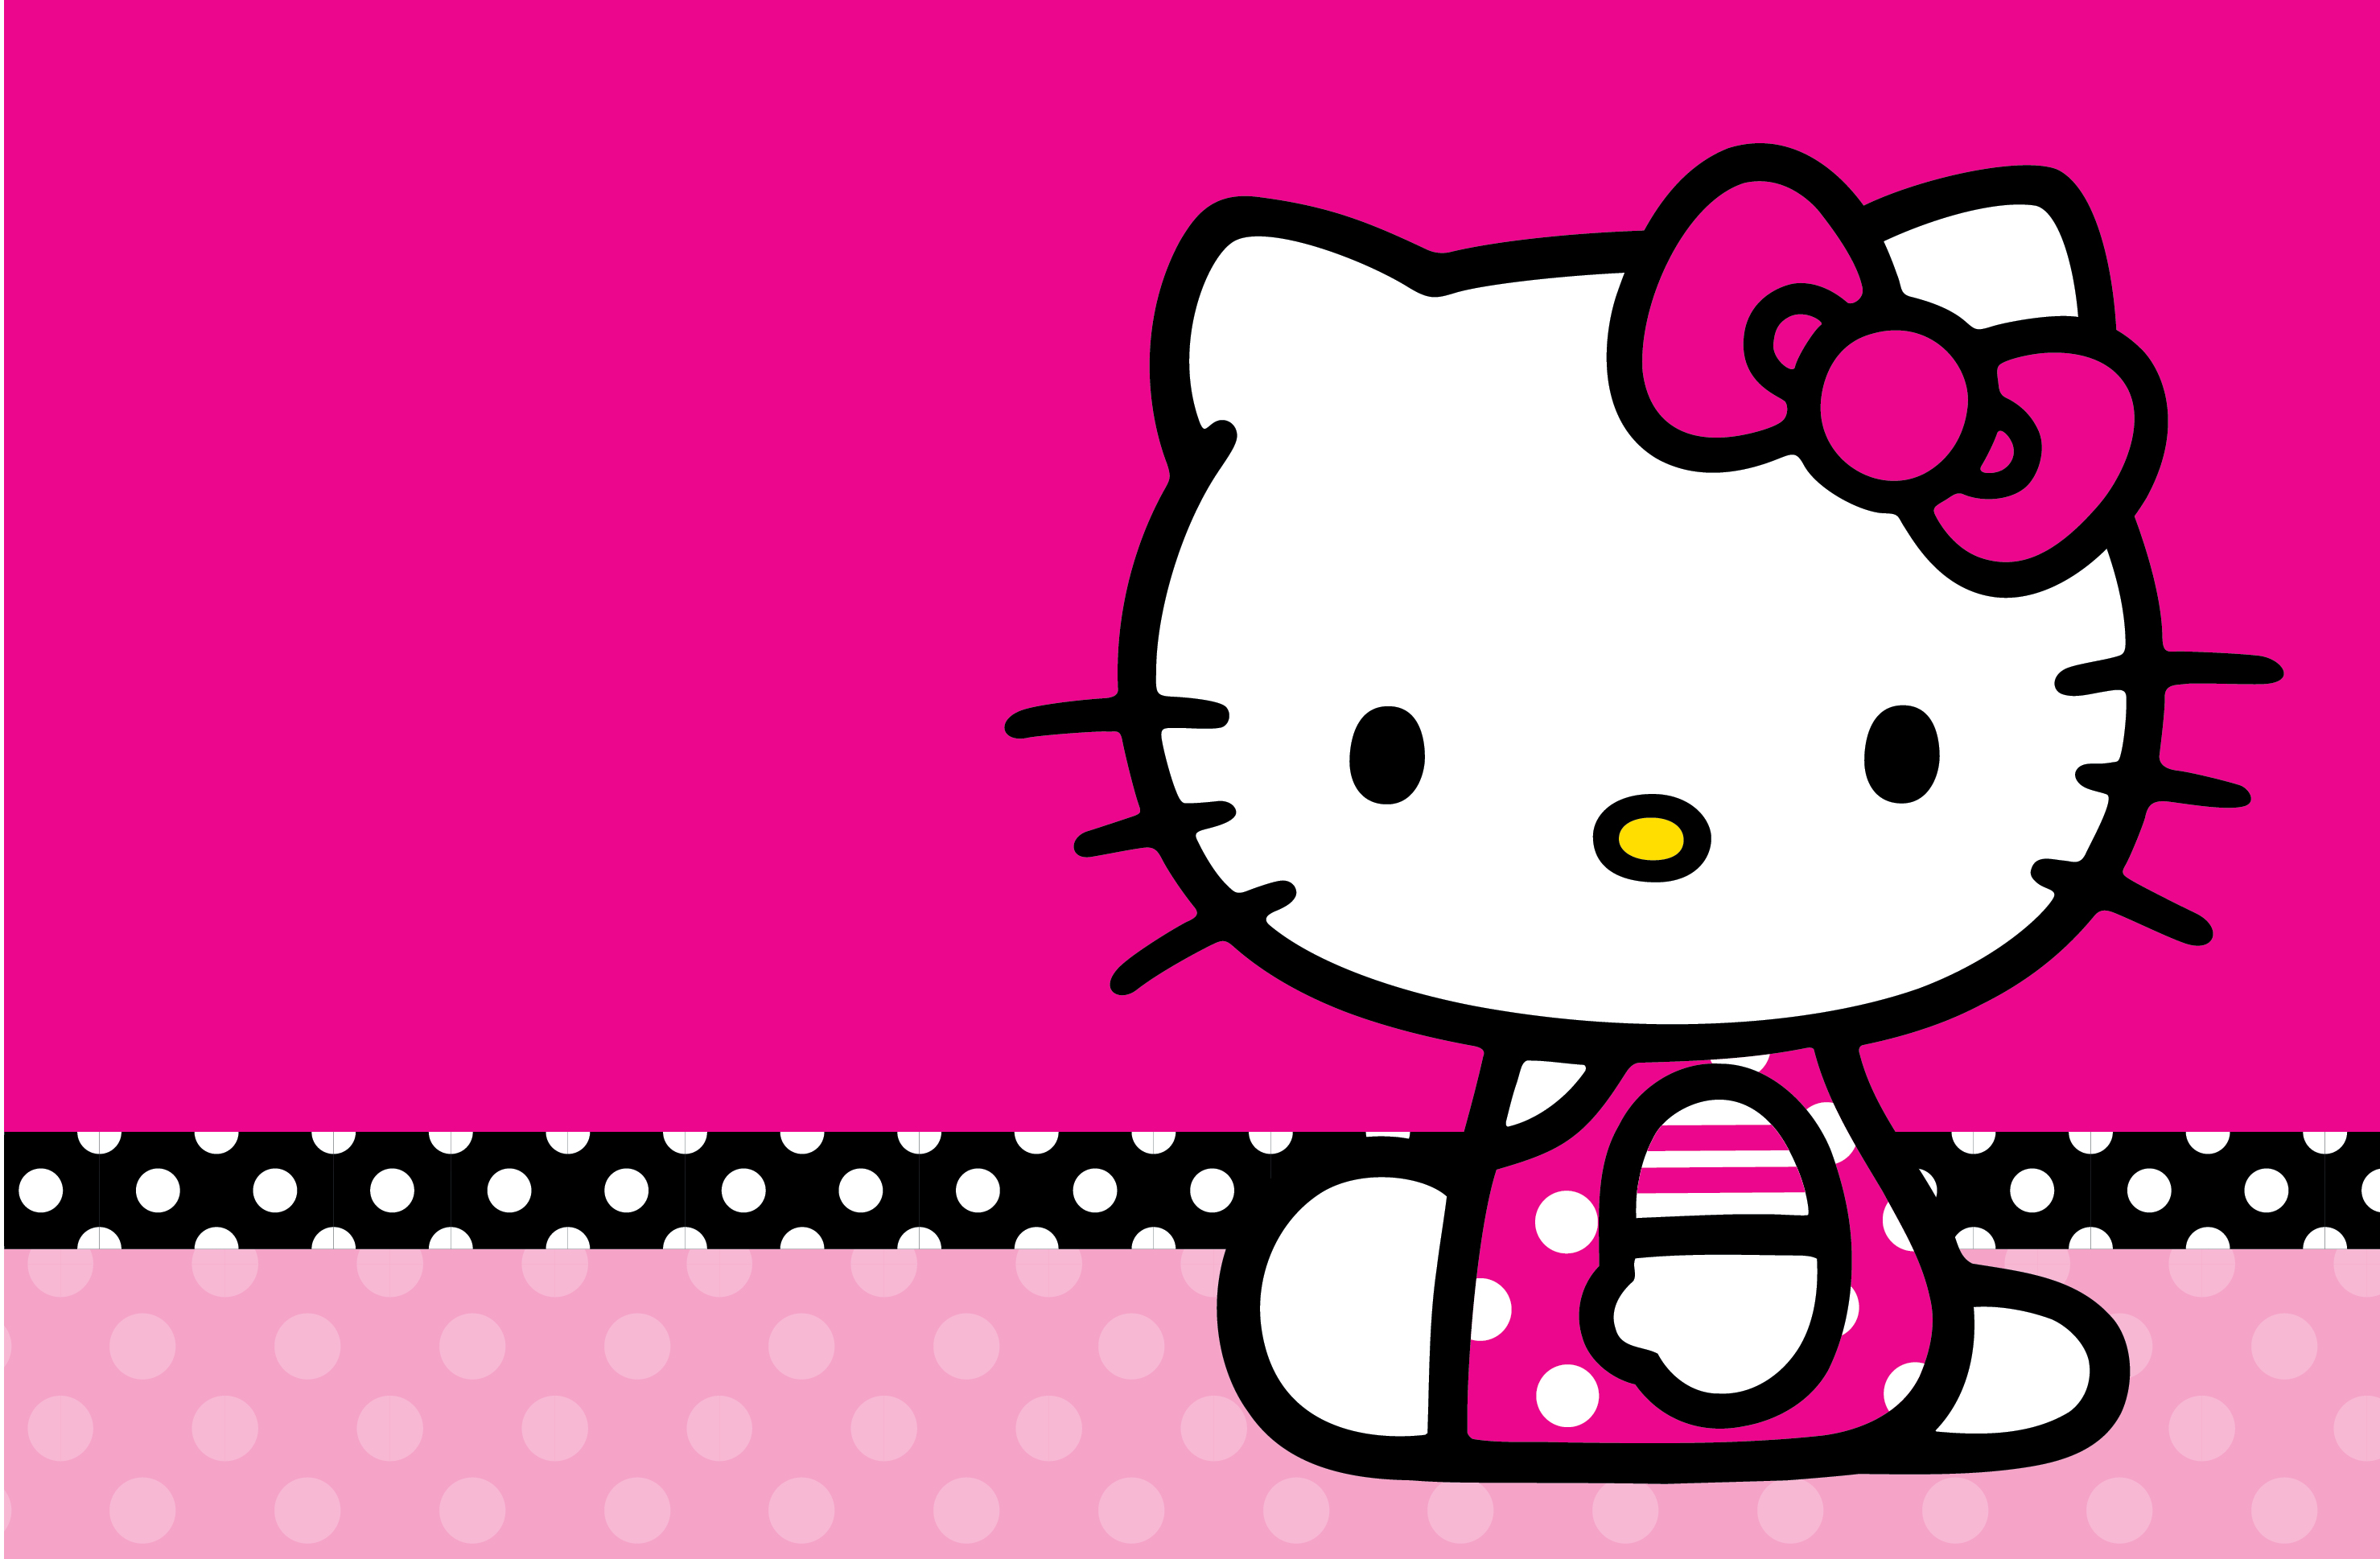 Free Hello Kitty, Download Free Clip Art, Free Clip Art on.